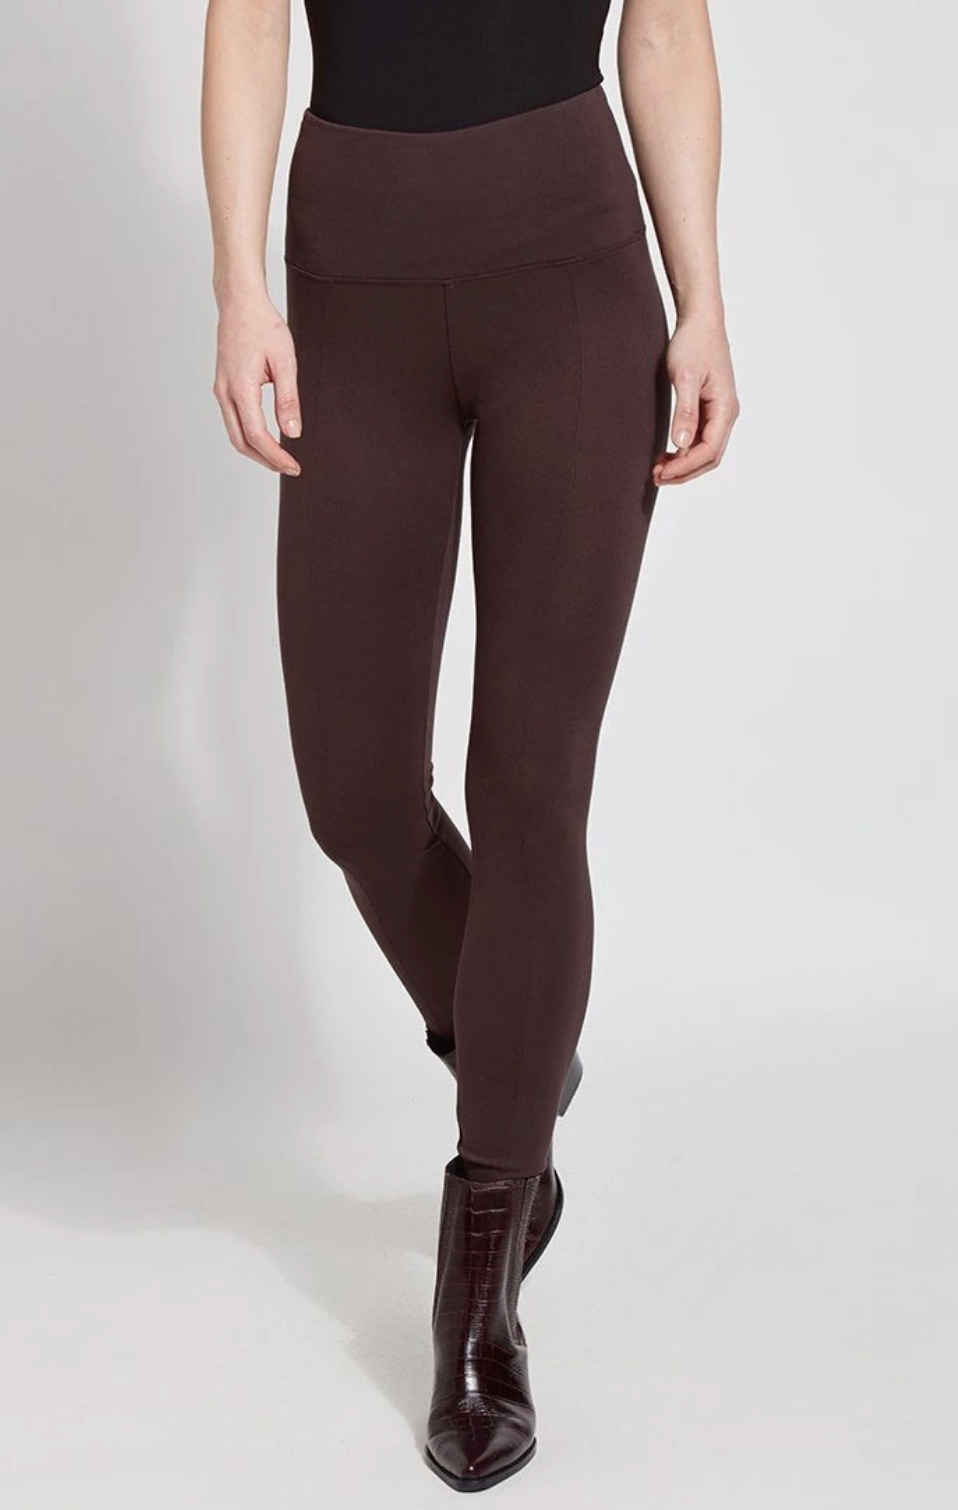 Lyseé Center-Seam Ponte Leggings